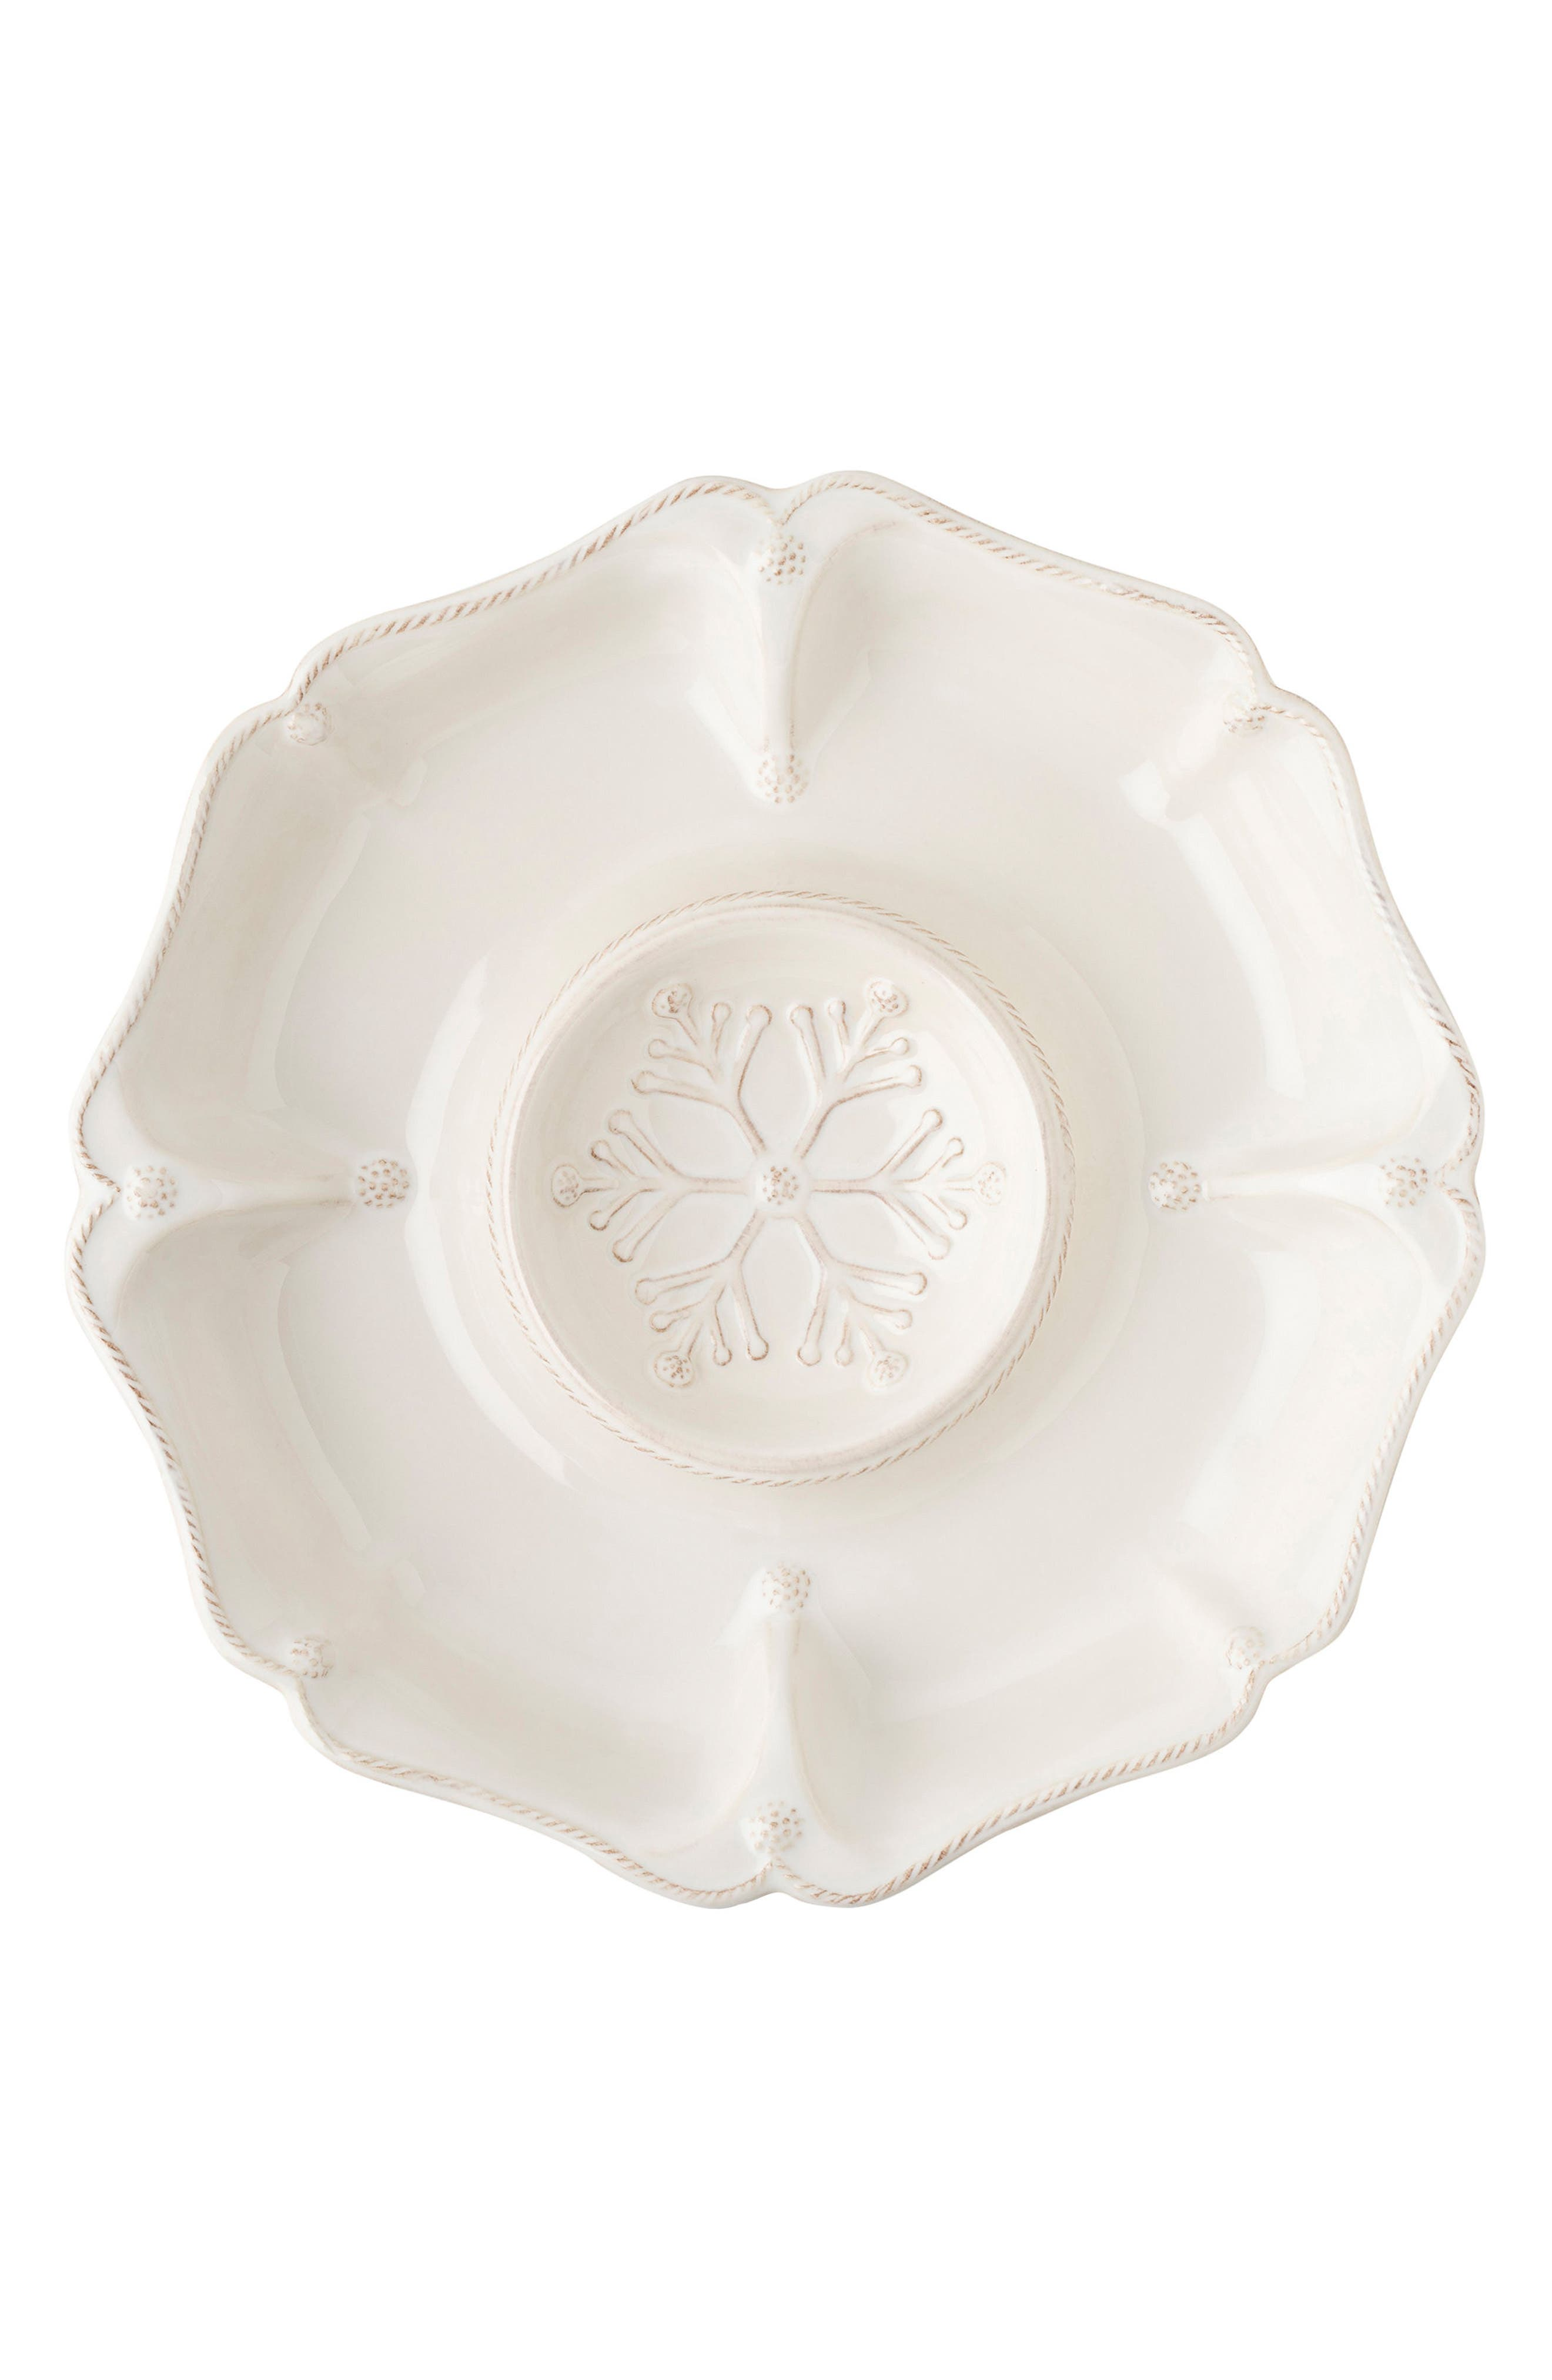 Berry & Thread Ceramic Hors D'Oeuvres Serving Tray,                         Main,                         color,